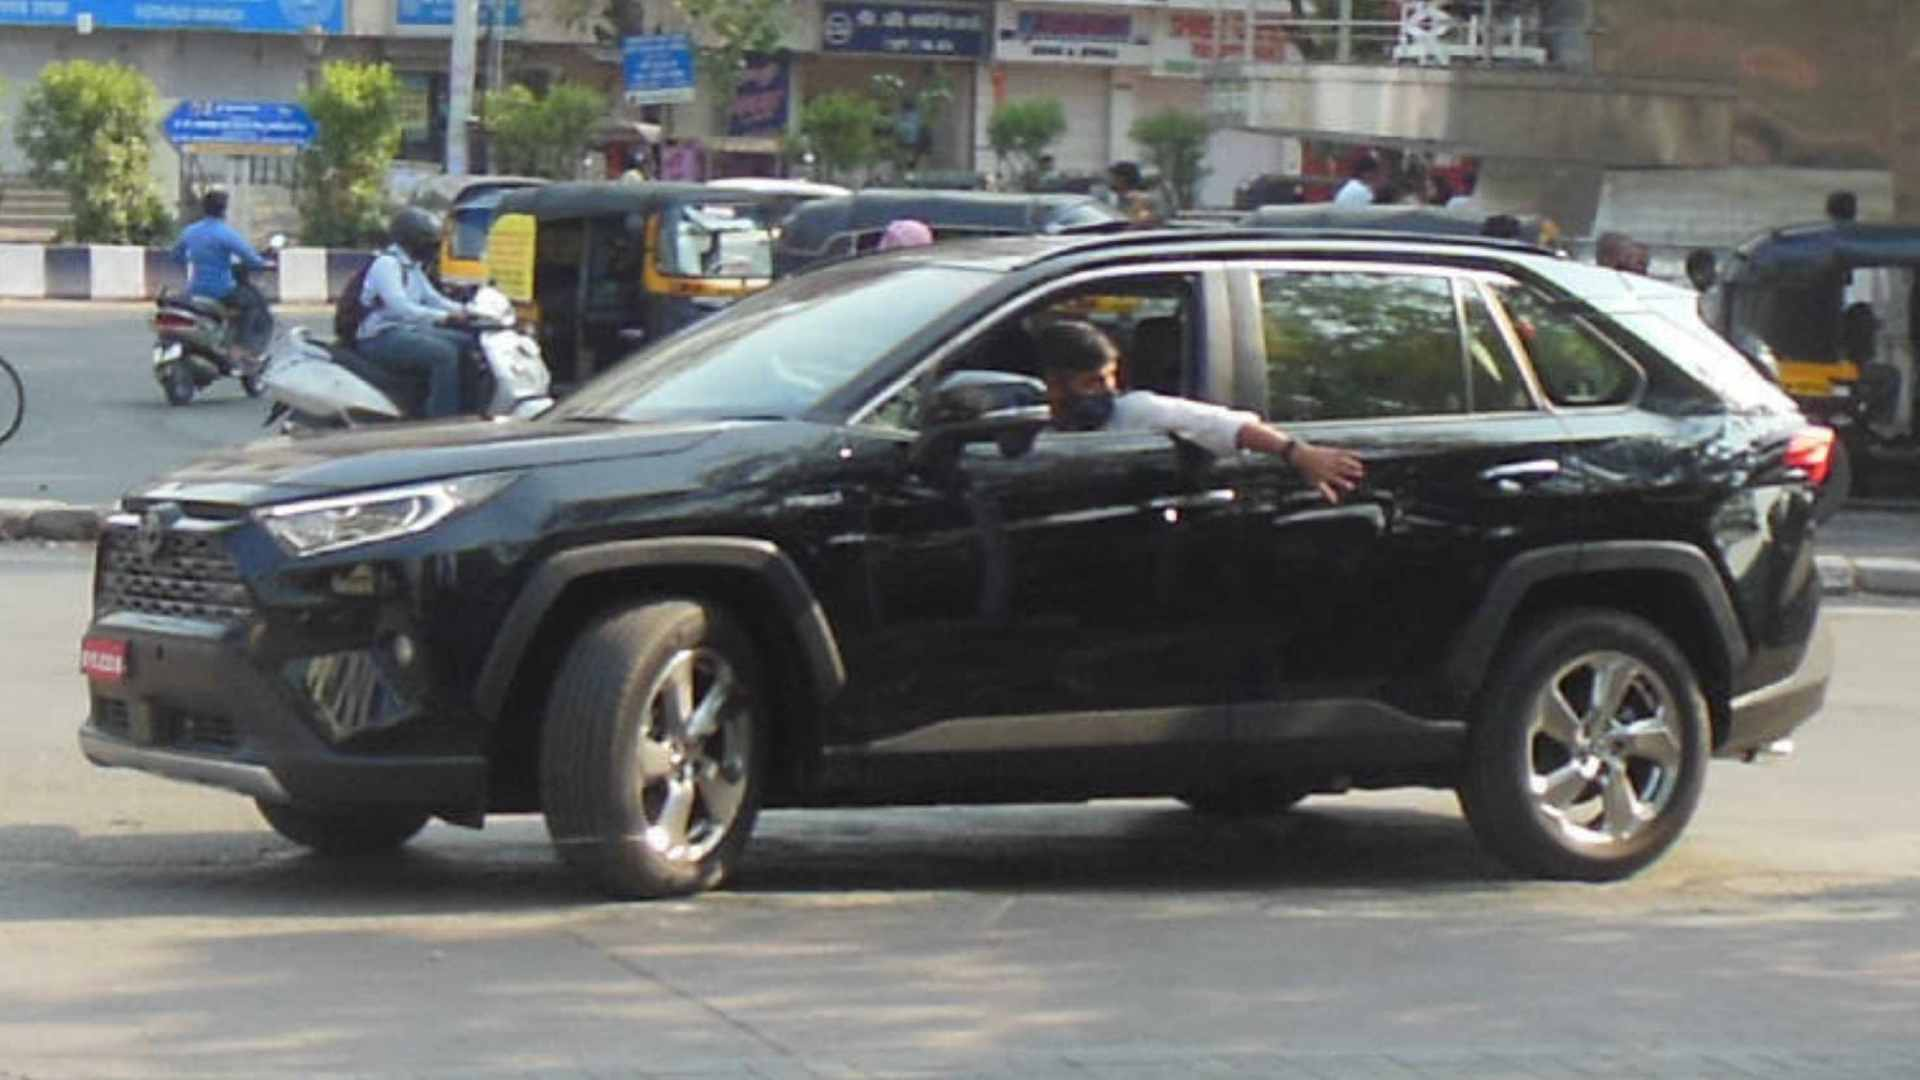 Toyota RAV4 spied on test in India, hybrid SUV has a pure-electric range of 75km